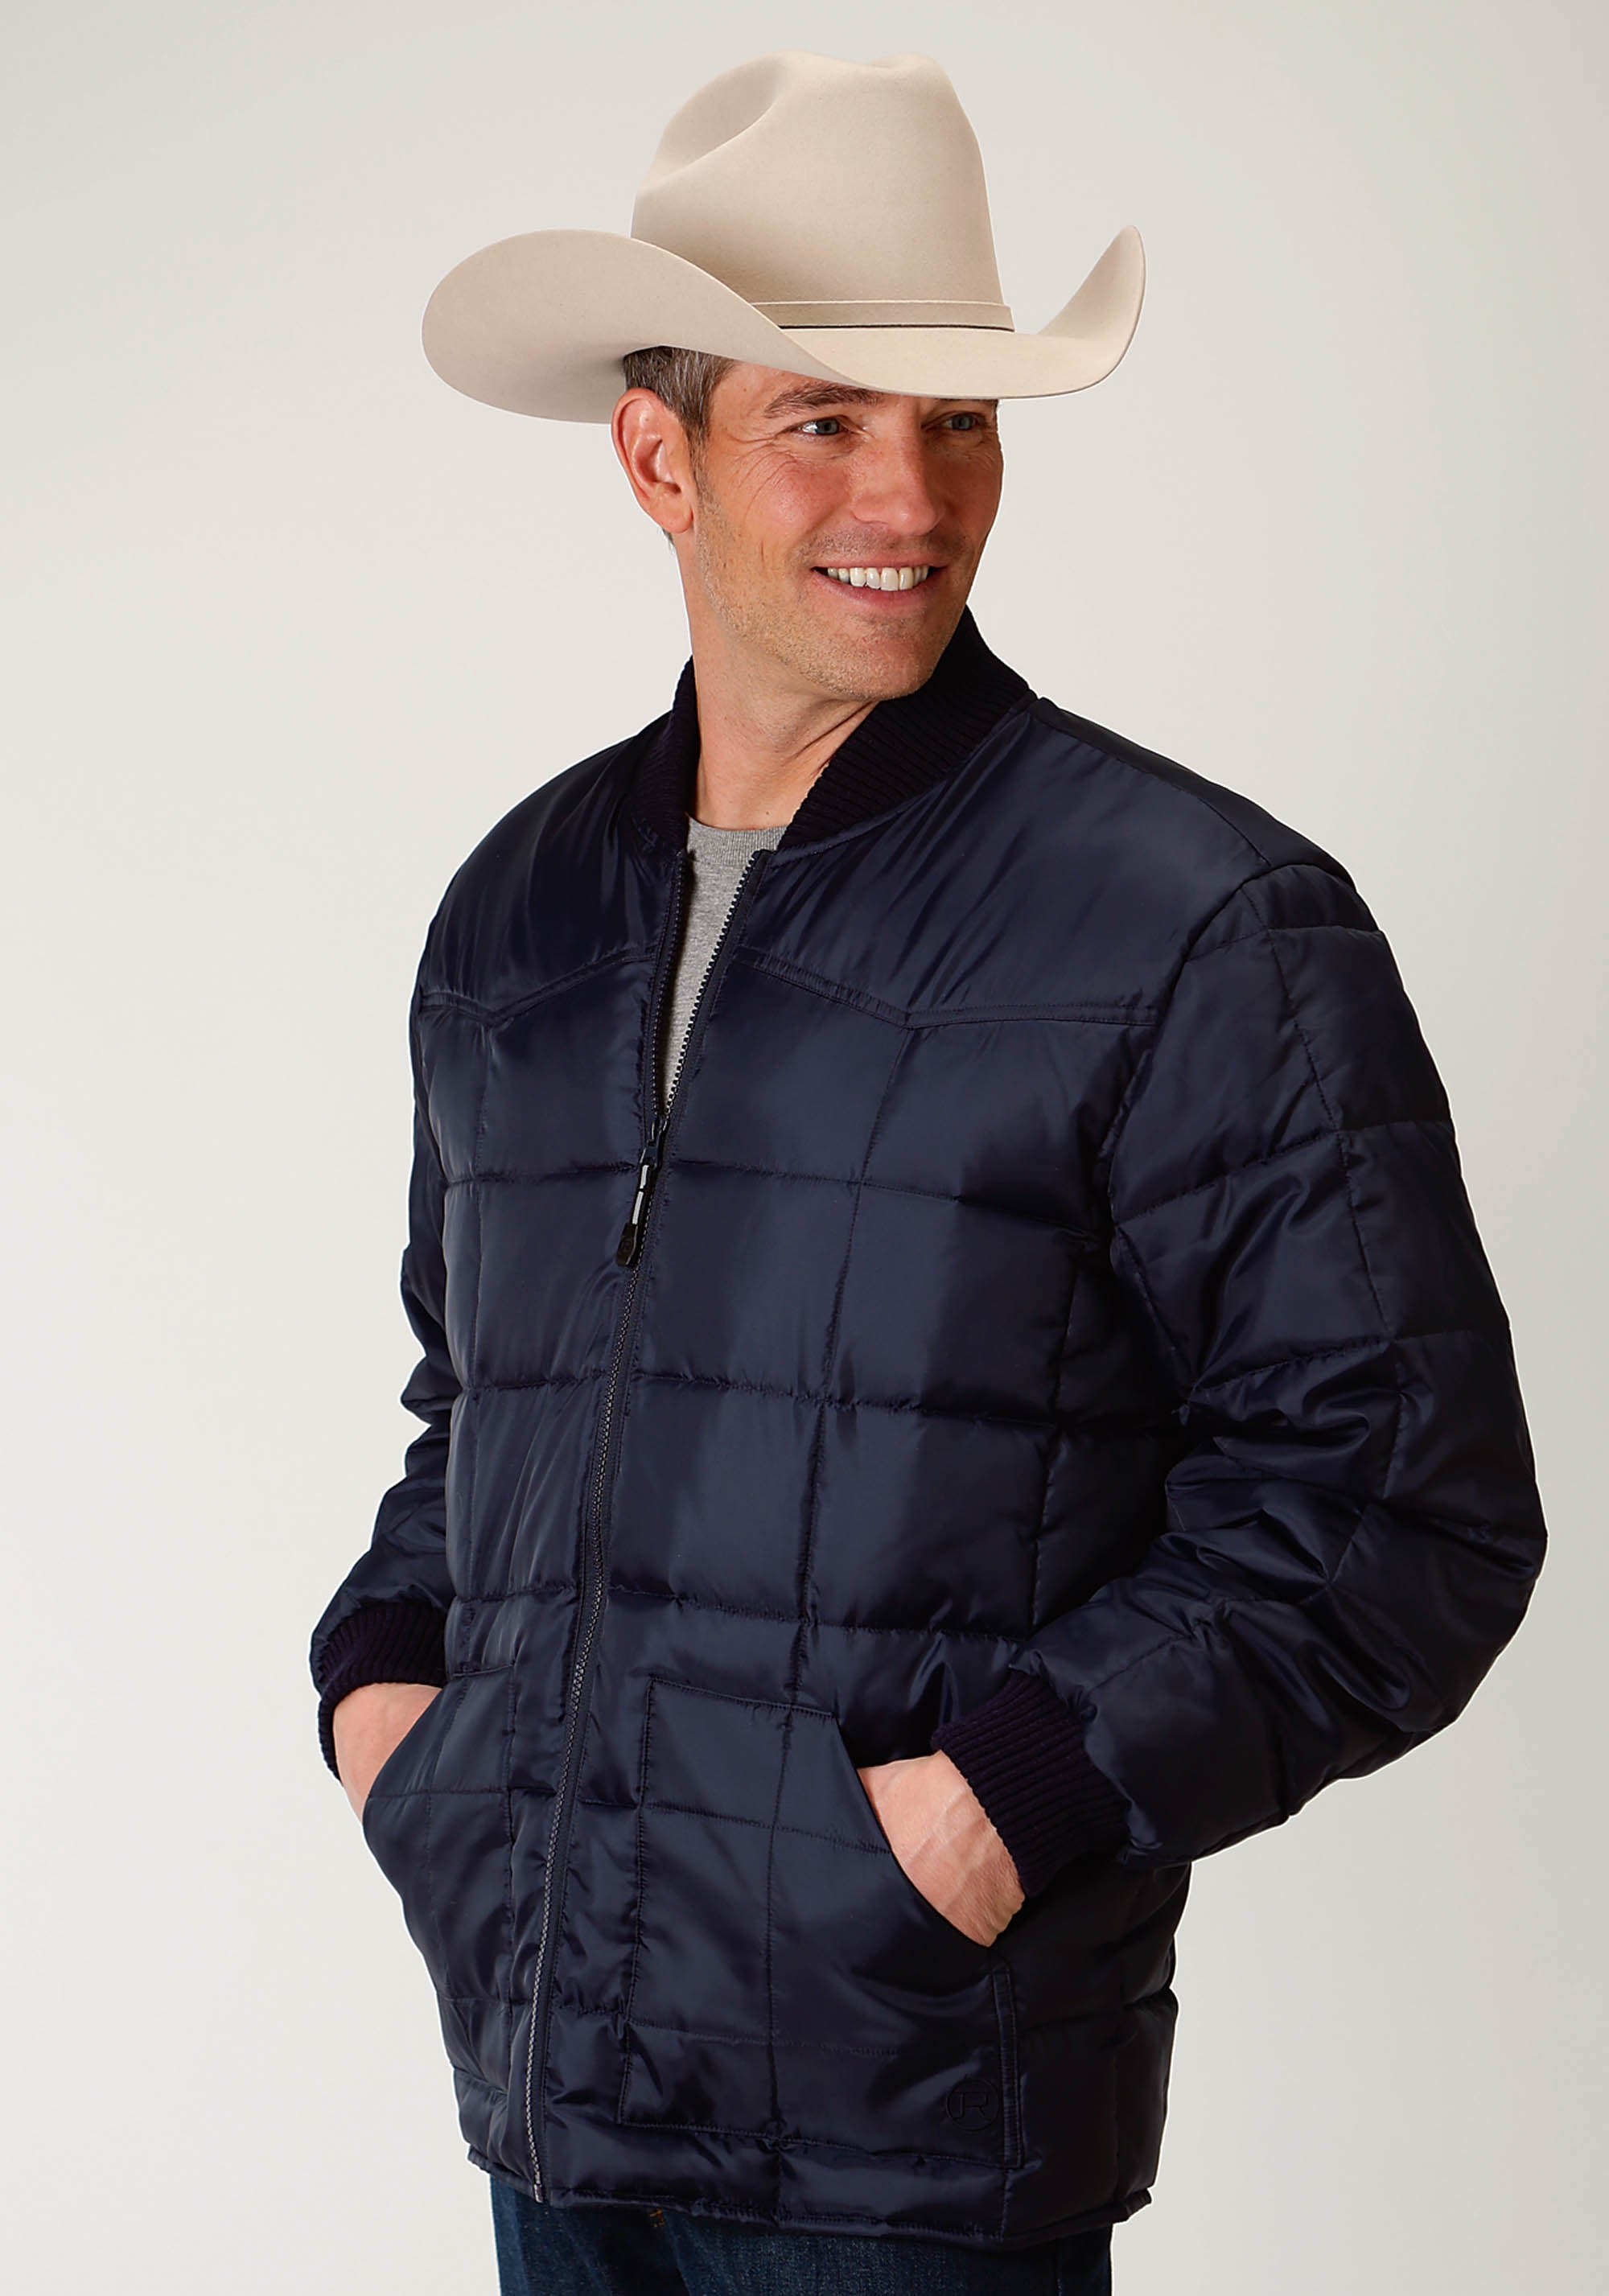 ROPER MENS BLUE 1473 NAVY MEN'S OUTERWEAR OPP OUTERWEAR- MEN'S JACKET